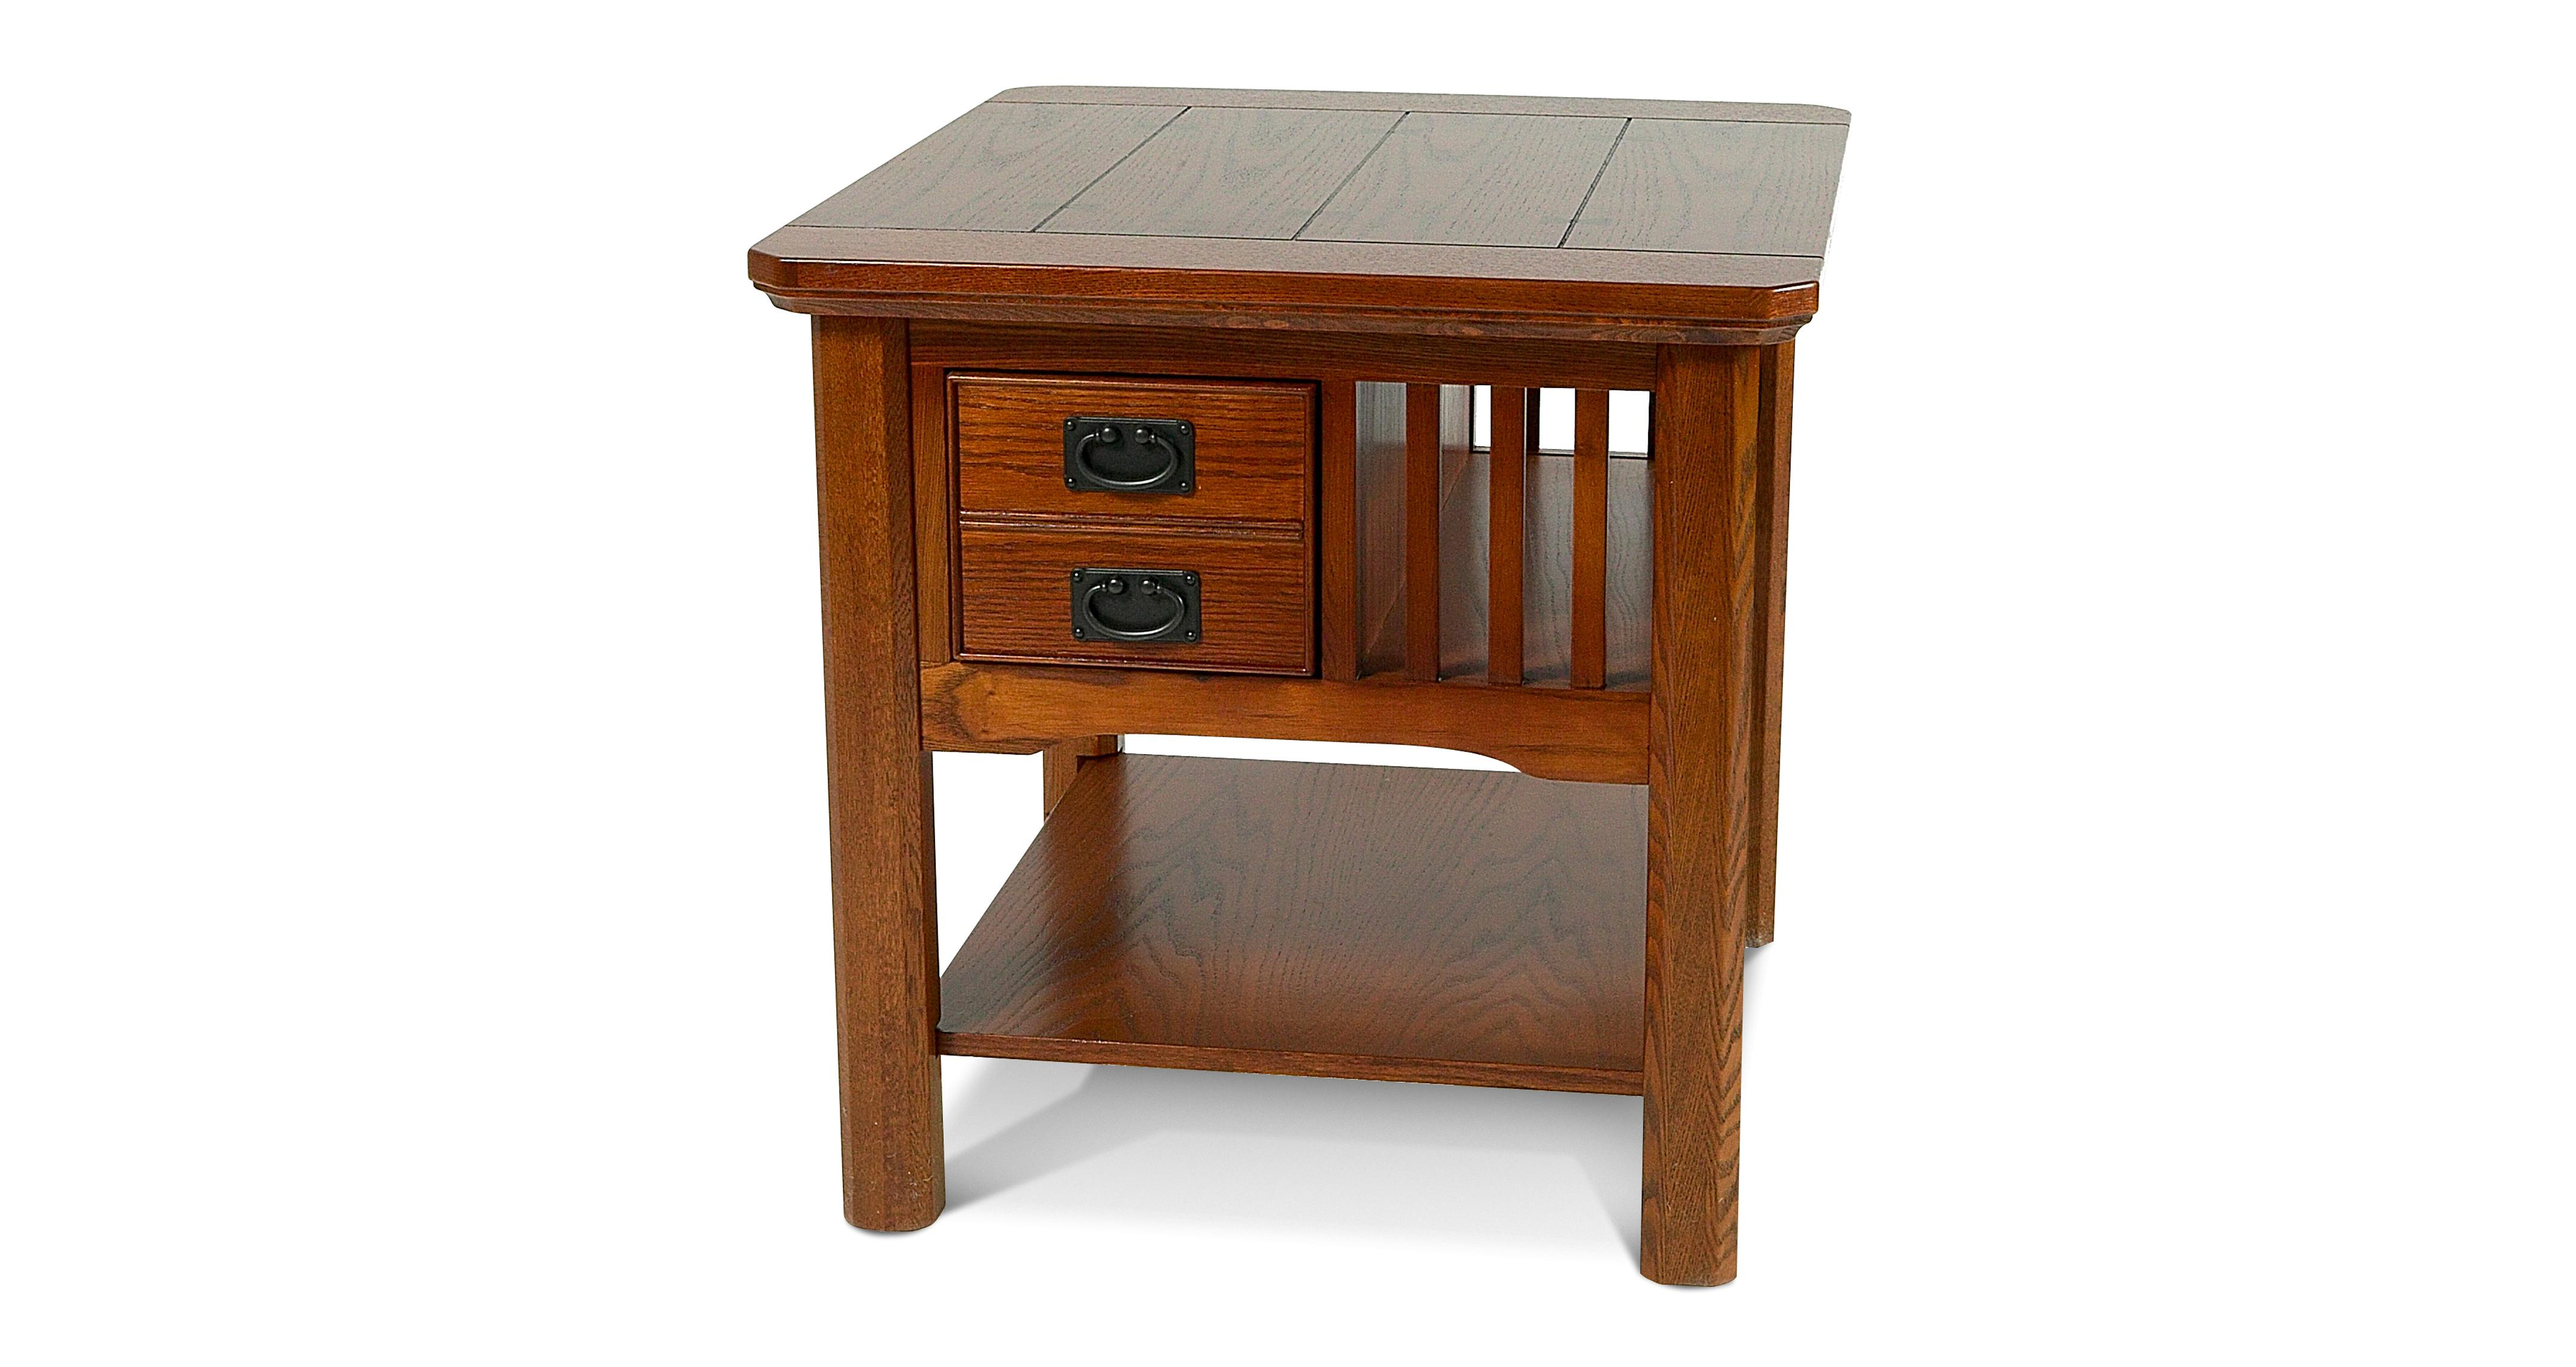 Chesterwood lamp table dfs ireland for Lamp table dfs